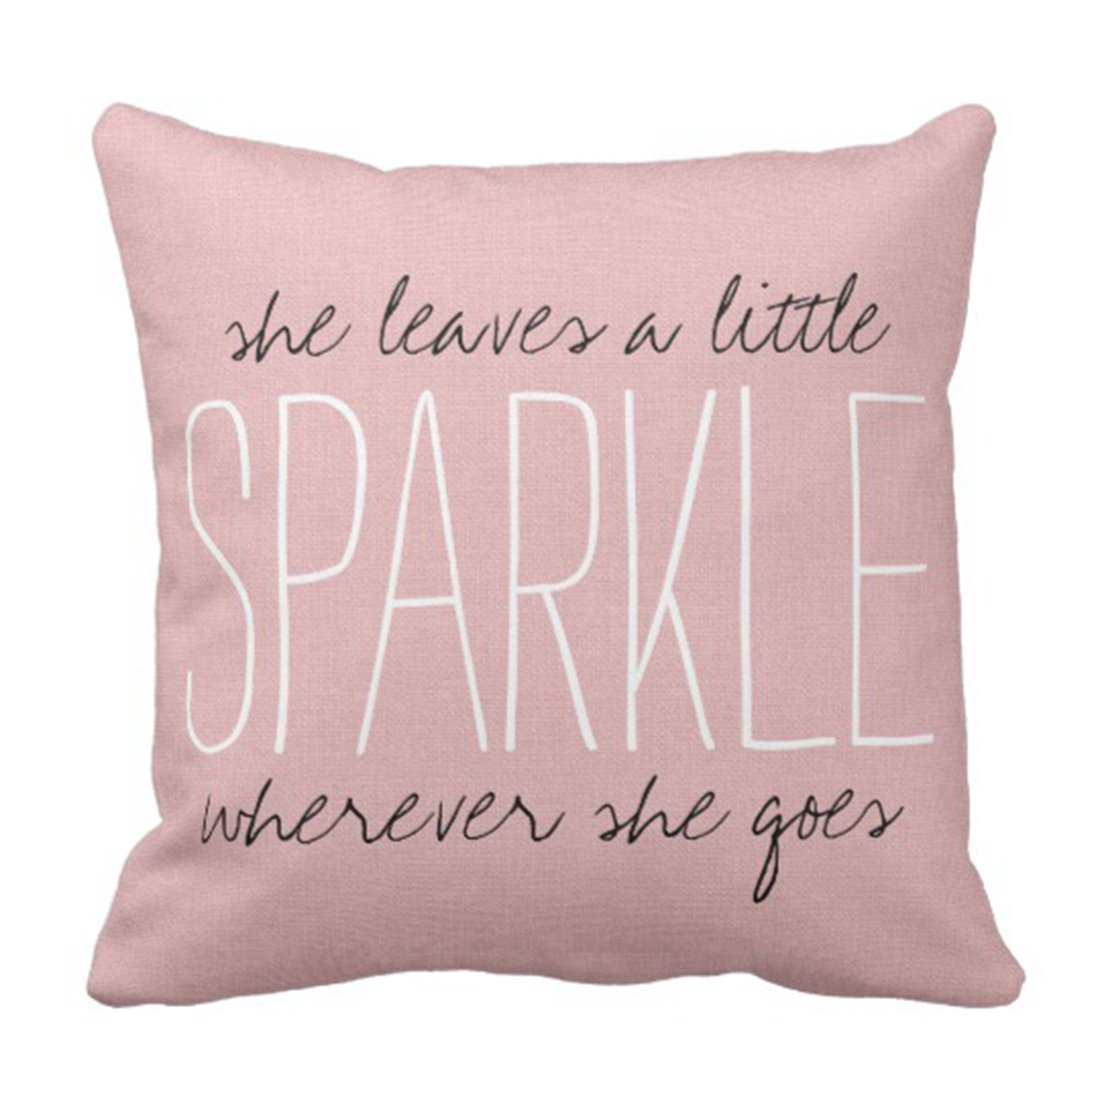 Emvency Throw Pillow Cover Rustic Pink Sparkle Decorative Pillow Case Girly Home Decor Square 18 x 18 Inch Cushion Pillowcase